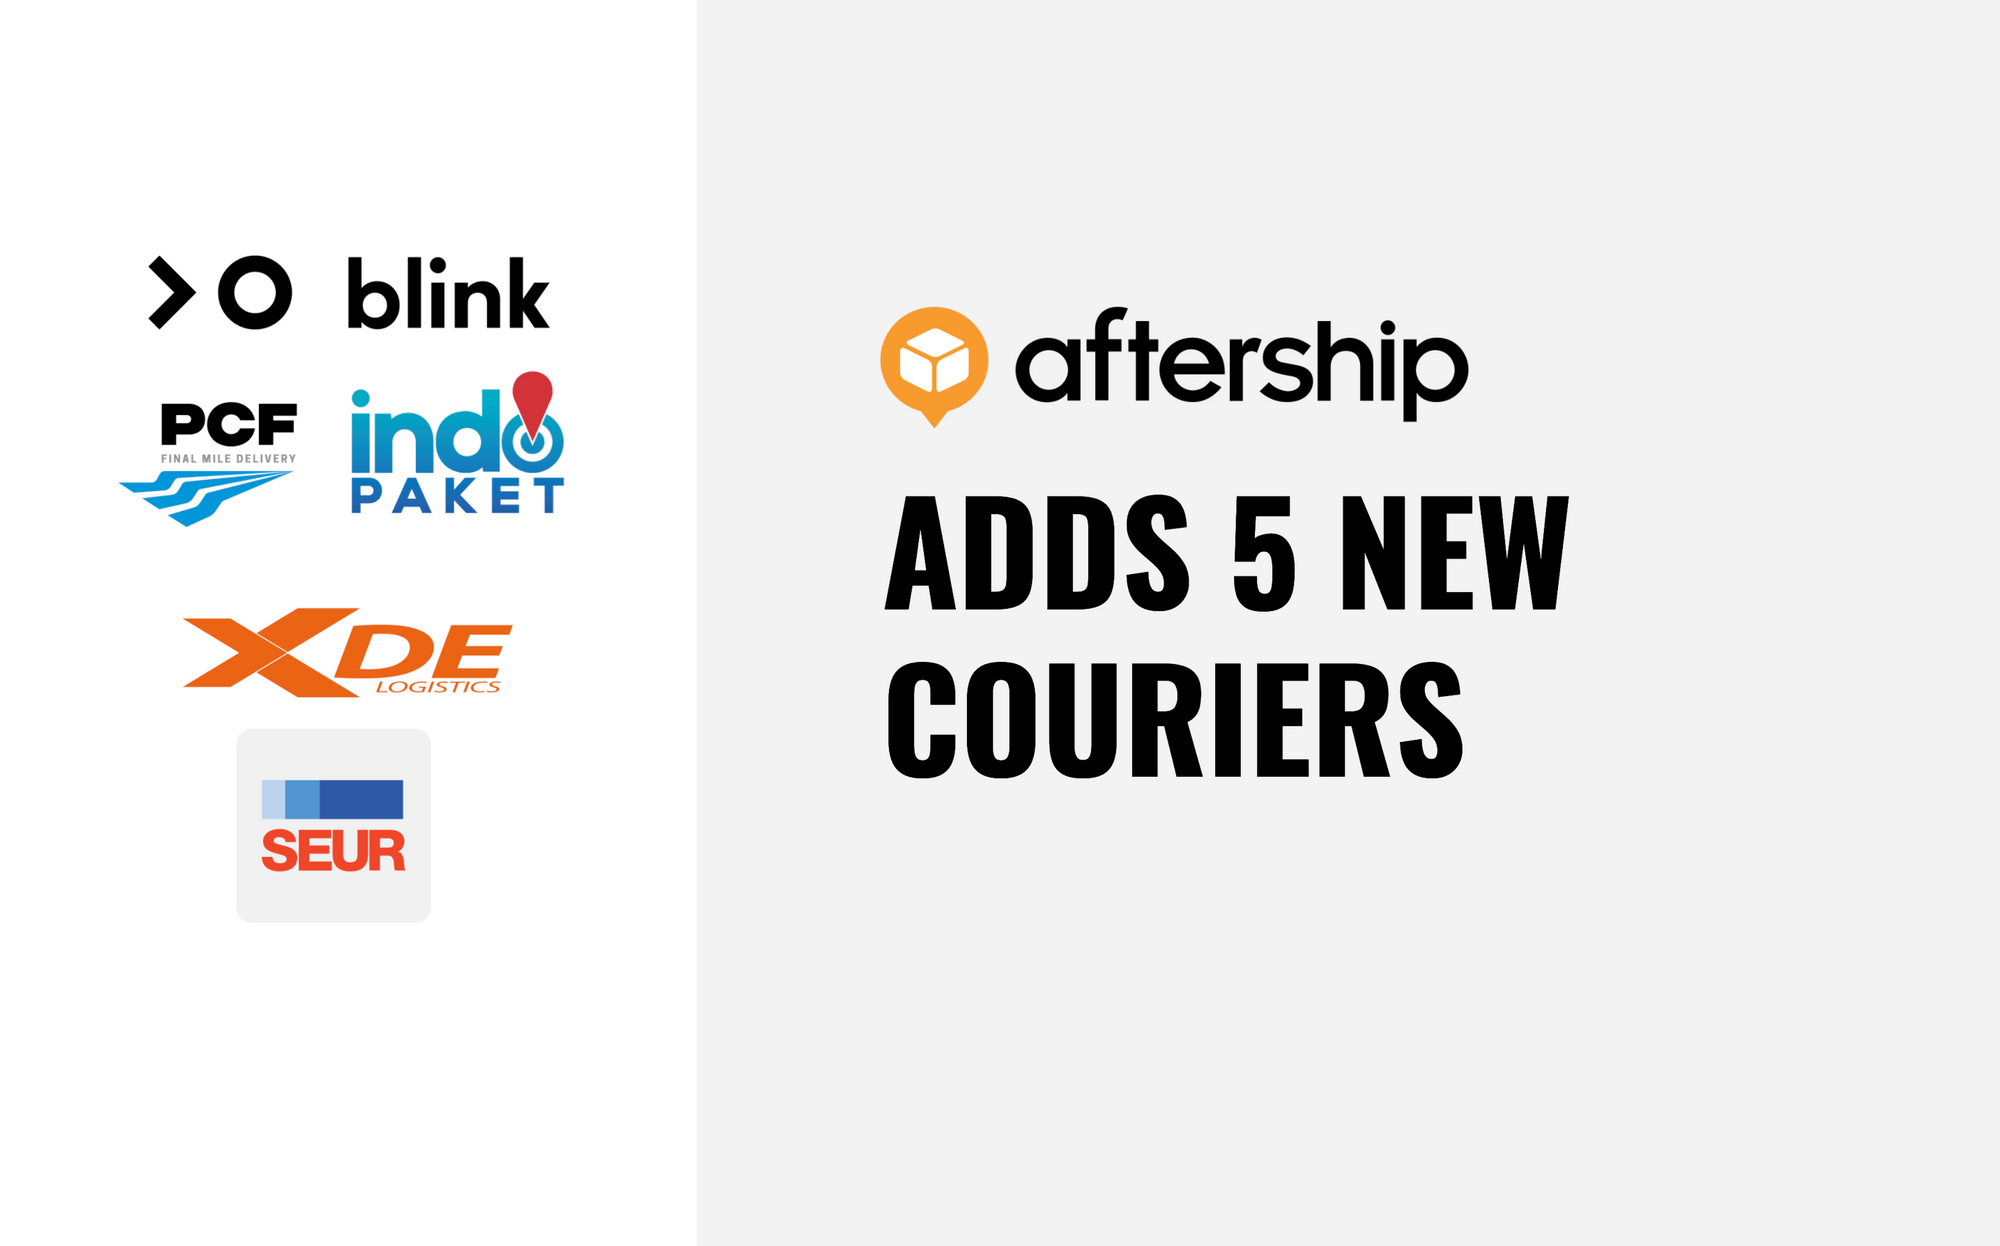 AfterShip adds 5 new couriers this week (21st Dec 2020 to 25th Dec 2020)